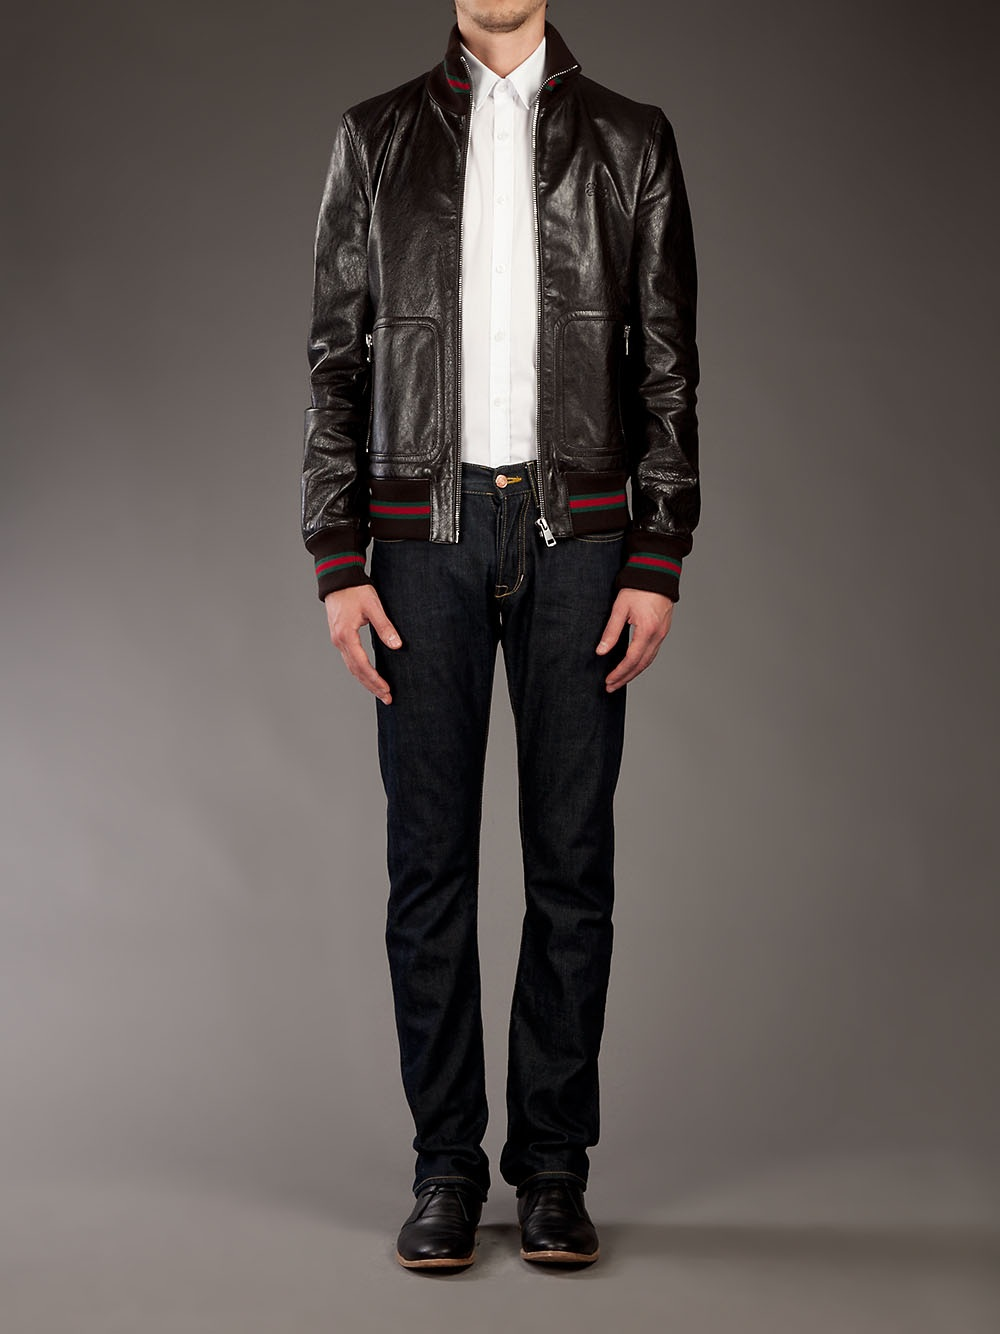 387969388d3 Gucci Leather Jacket in Black for Men - Lyst